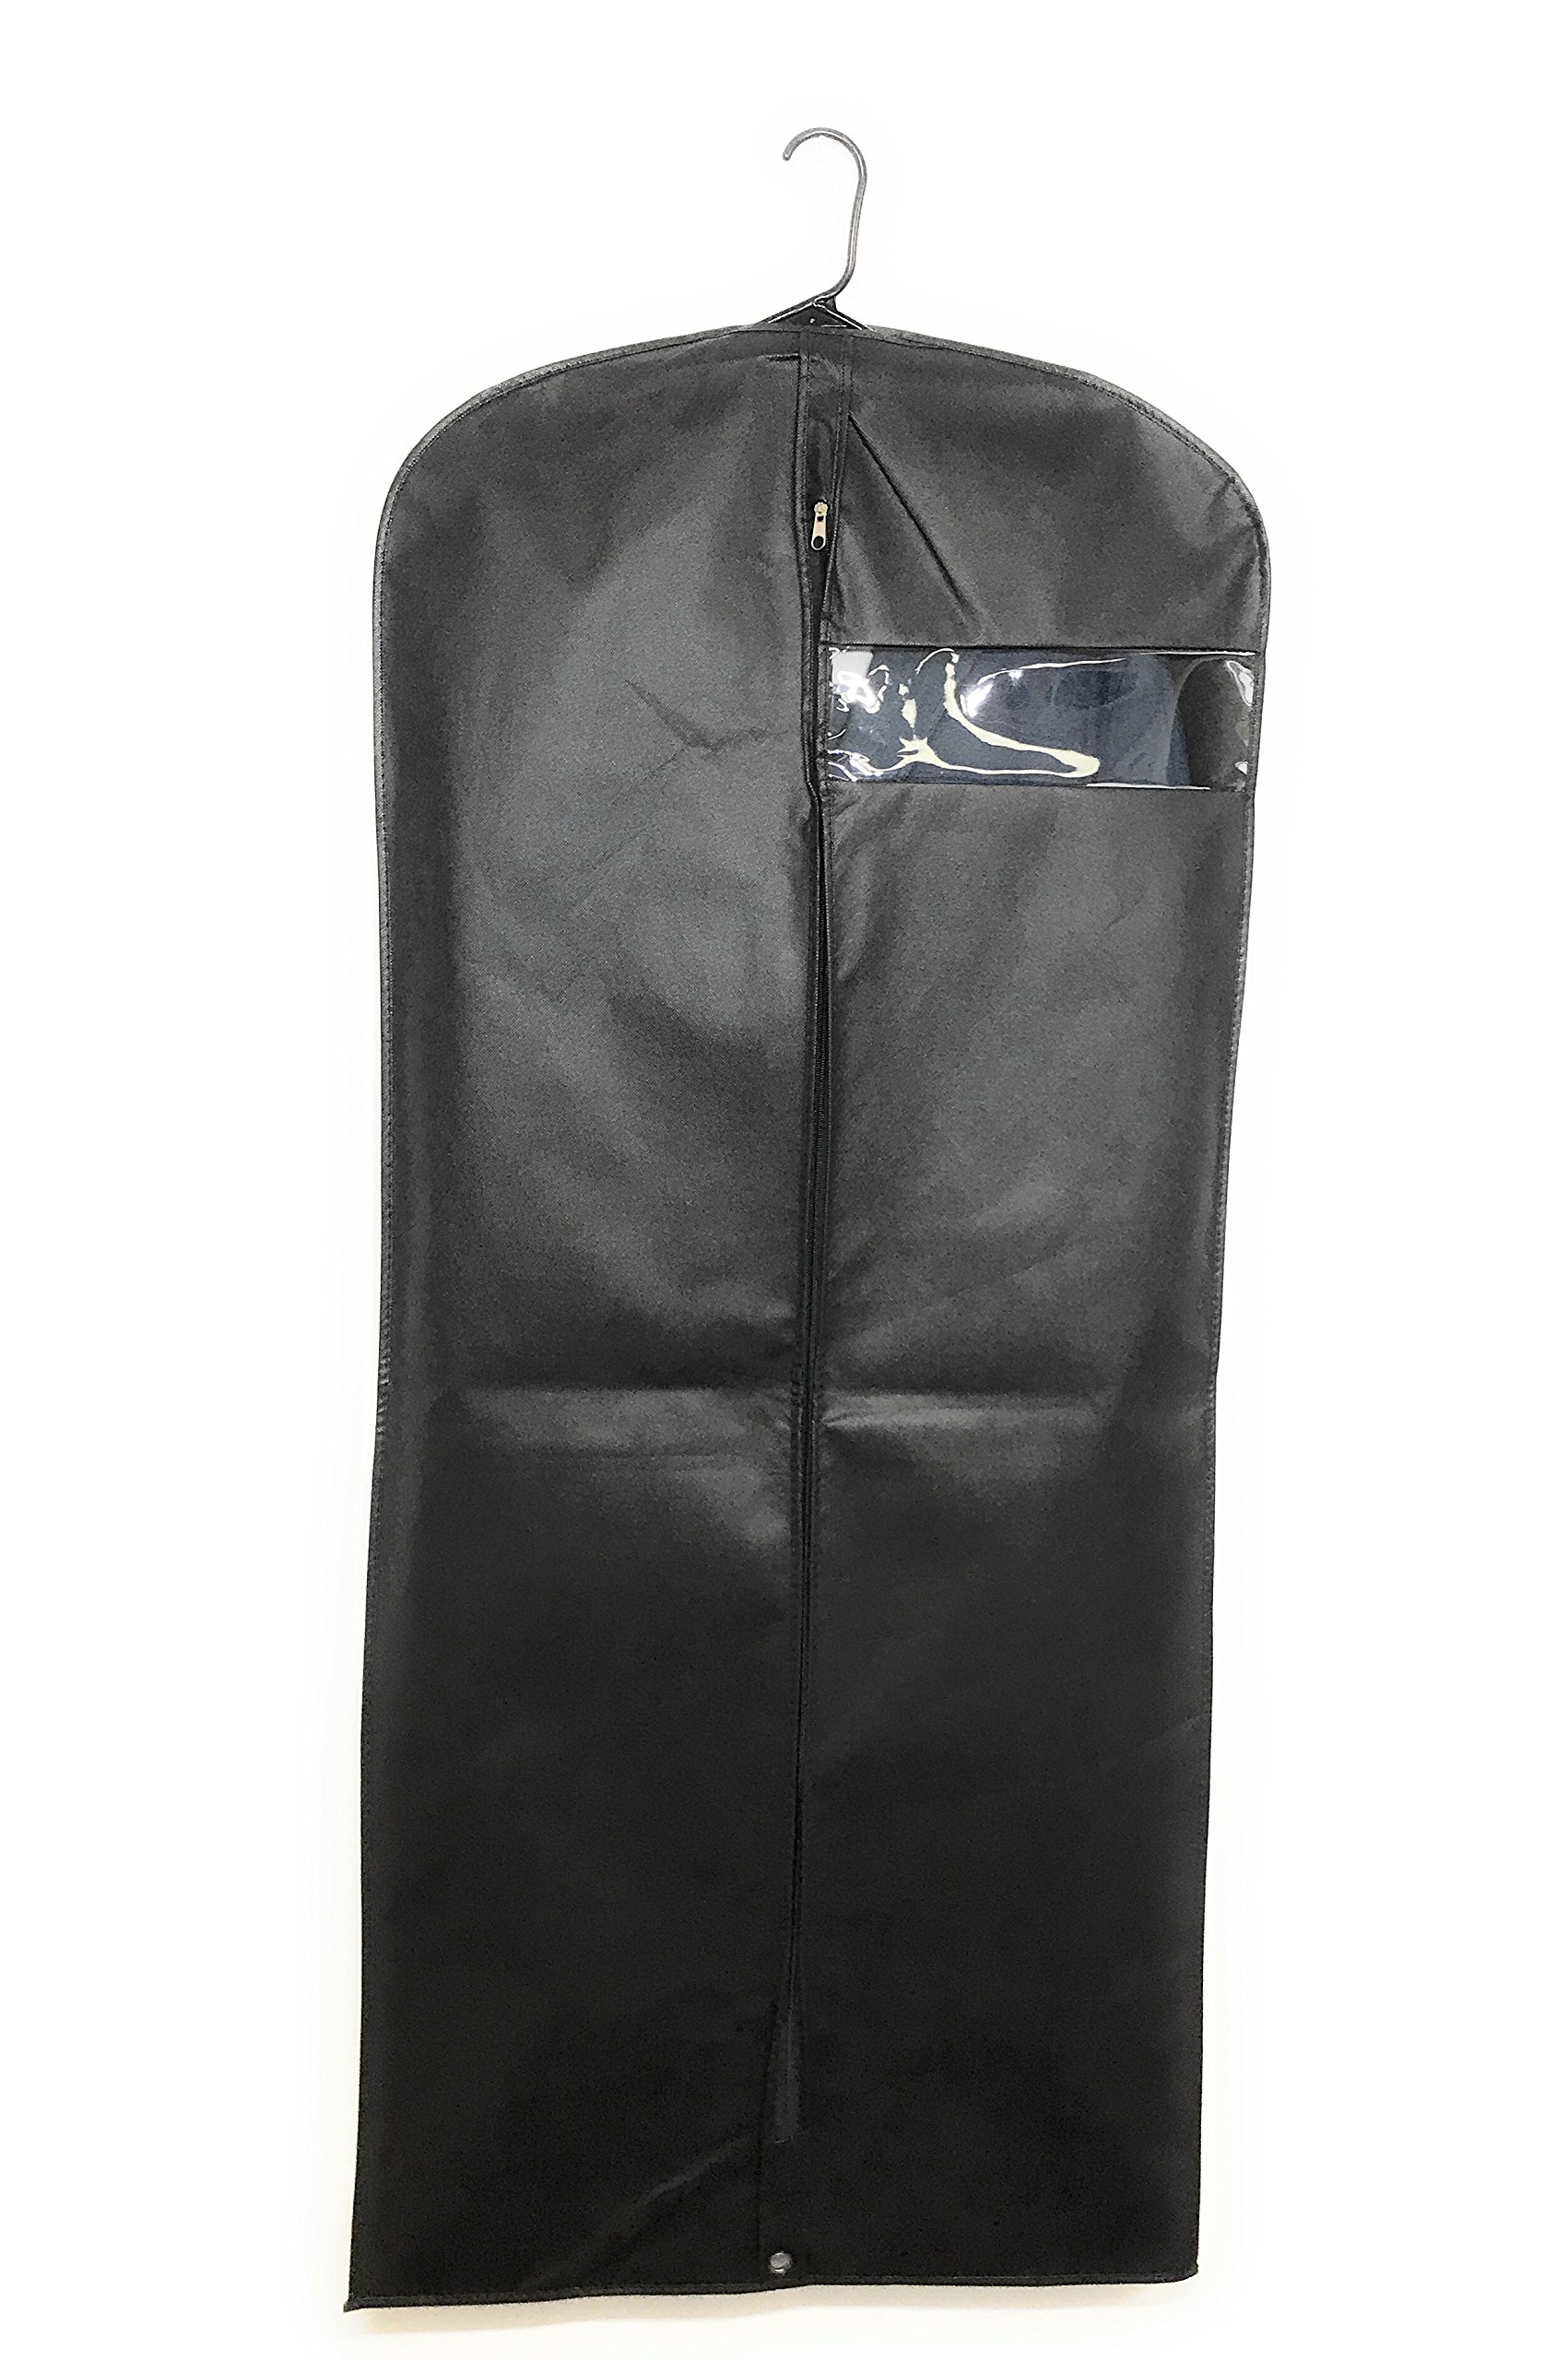 Garment Bag Covers By MYTH21 for Luggage, Dresses, Linens, Storage or Travel Suit Bags with Clear Window Pack of 5 (Black, 54) by MYTH21 (Image #1)